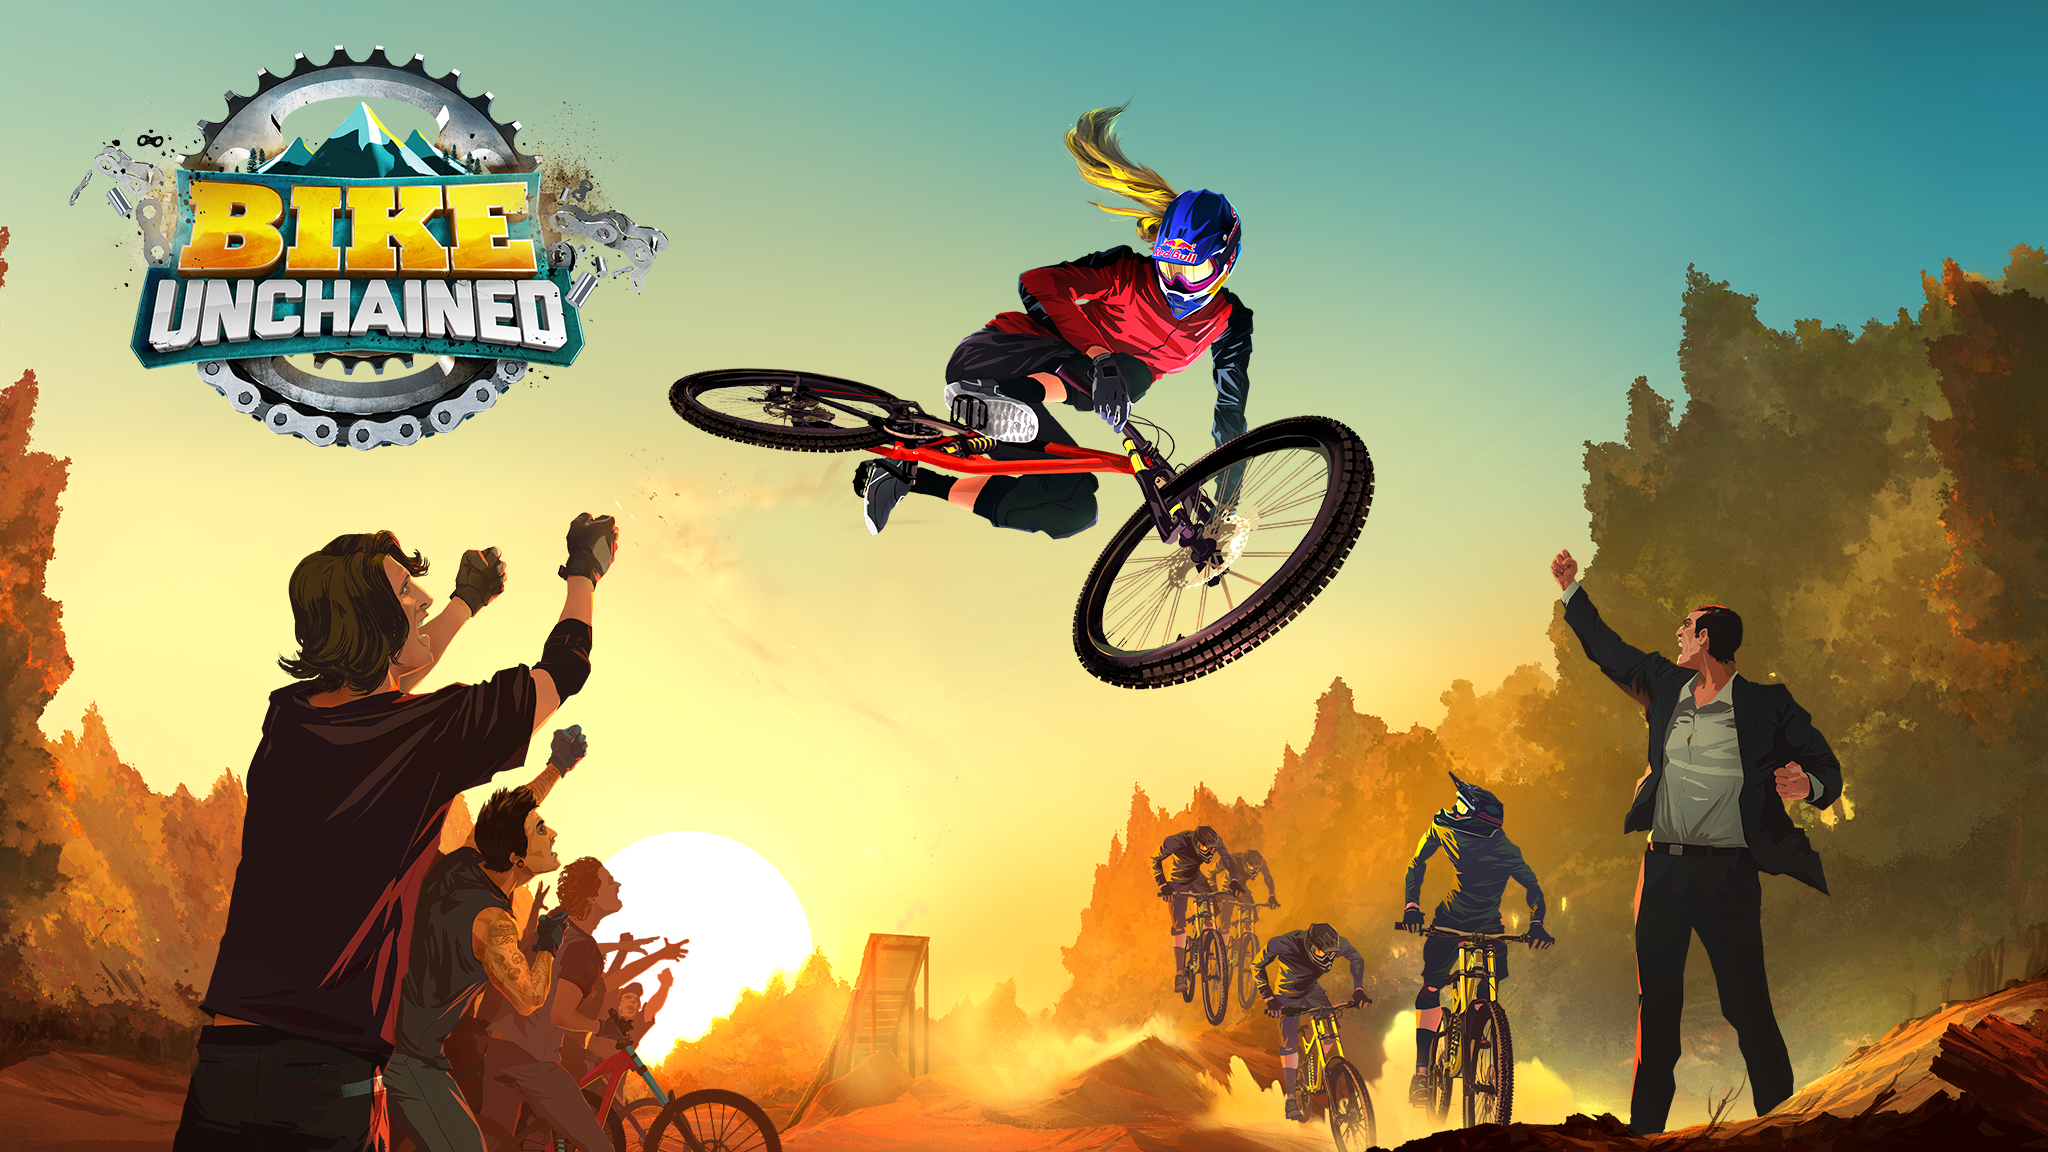 Pull off killer tricks and stunts in Bike Unchained